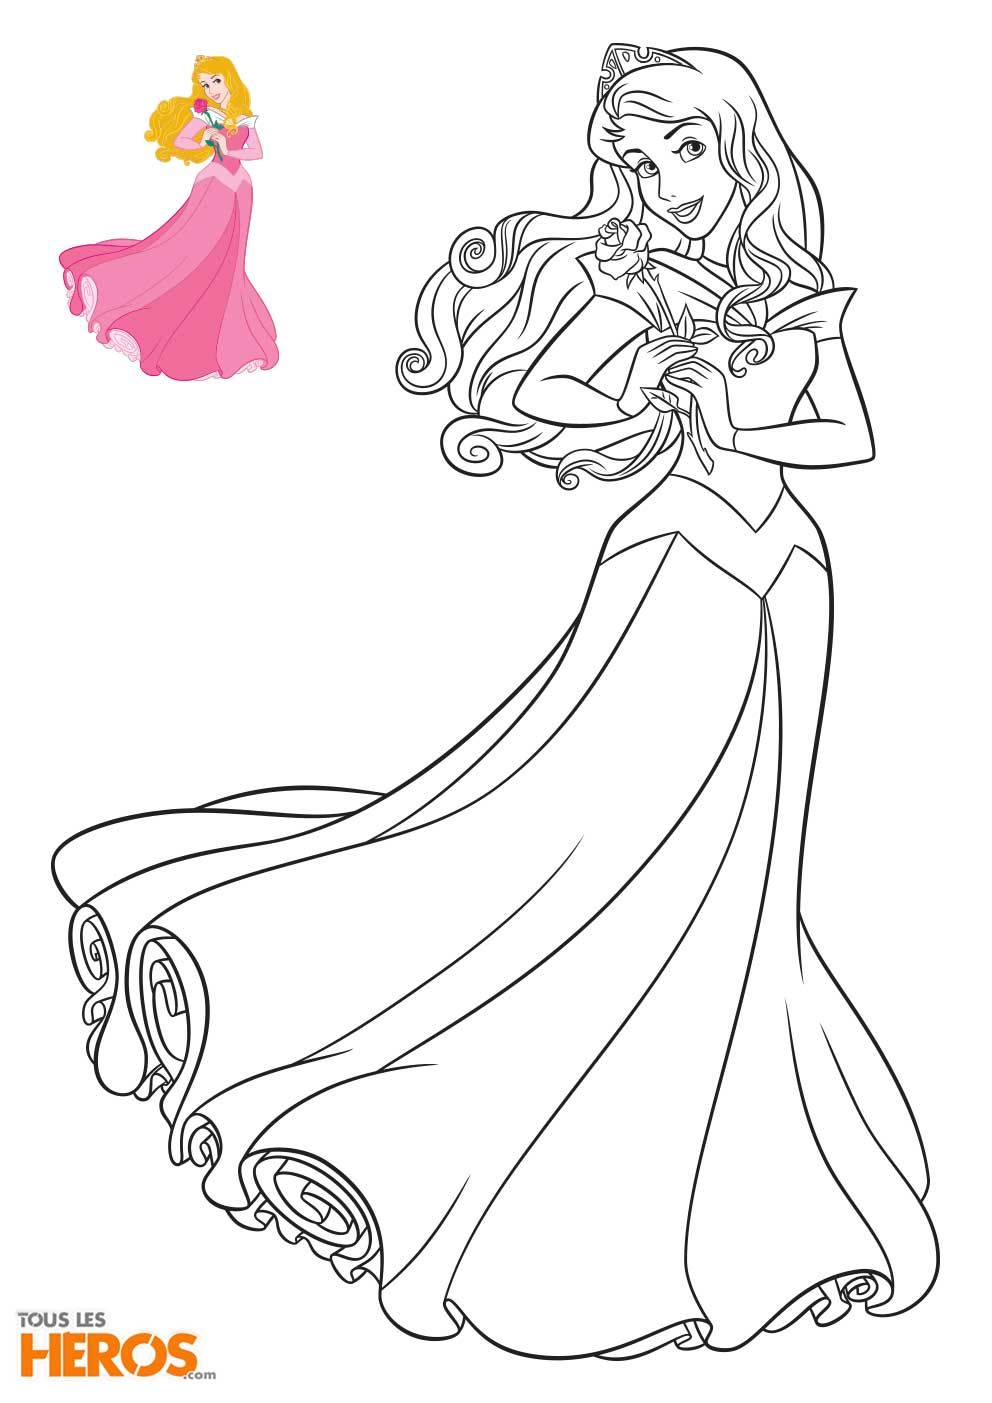 Cool 13 Coloriage Princesses Disney A Imprimer Coloriage Princesse Coloriage Princesse Disney Coloriage A Imprimer Disney